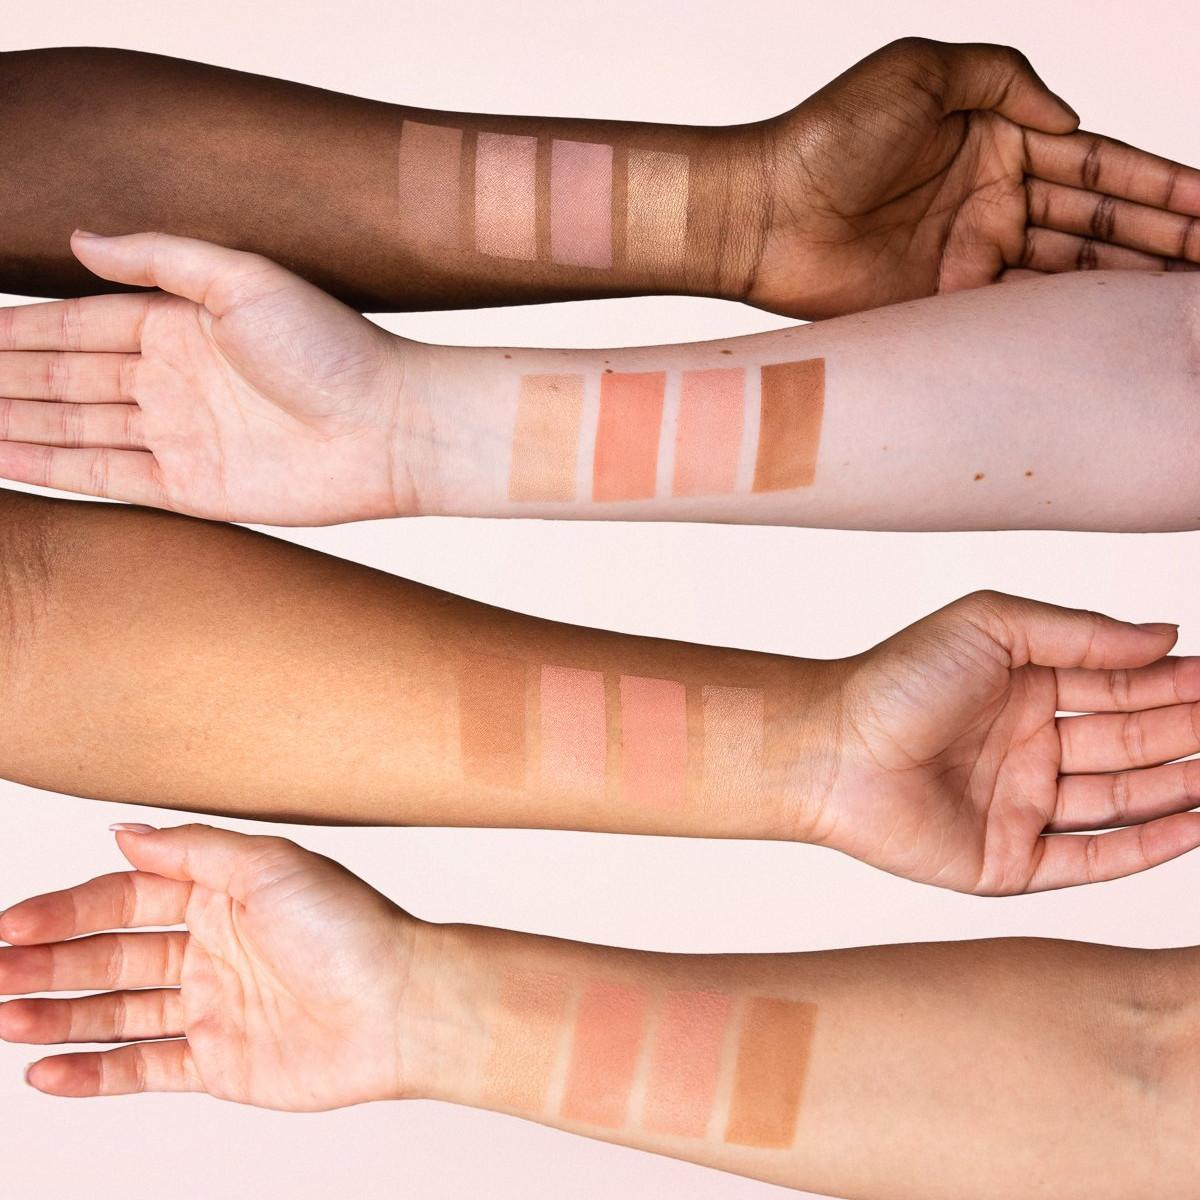 ZOEVA Cosmetics Together We Grow Face Palette Arm Swatches